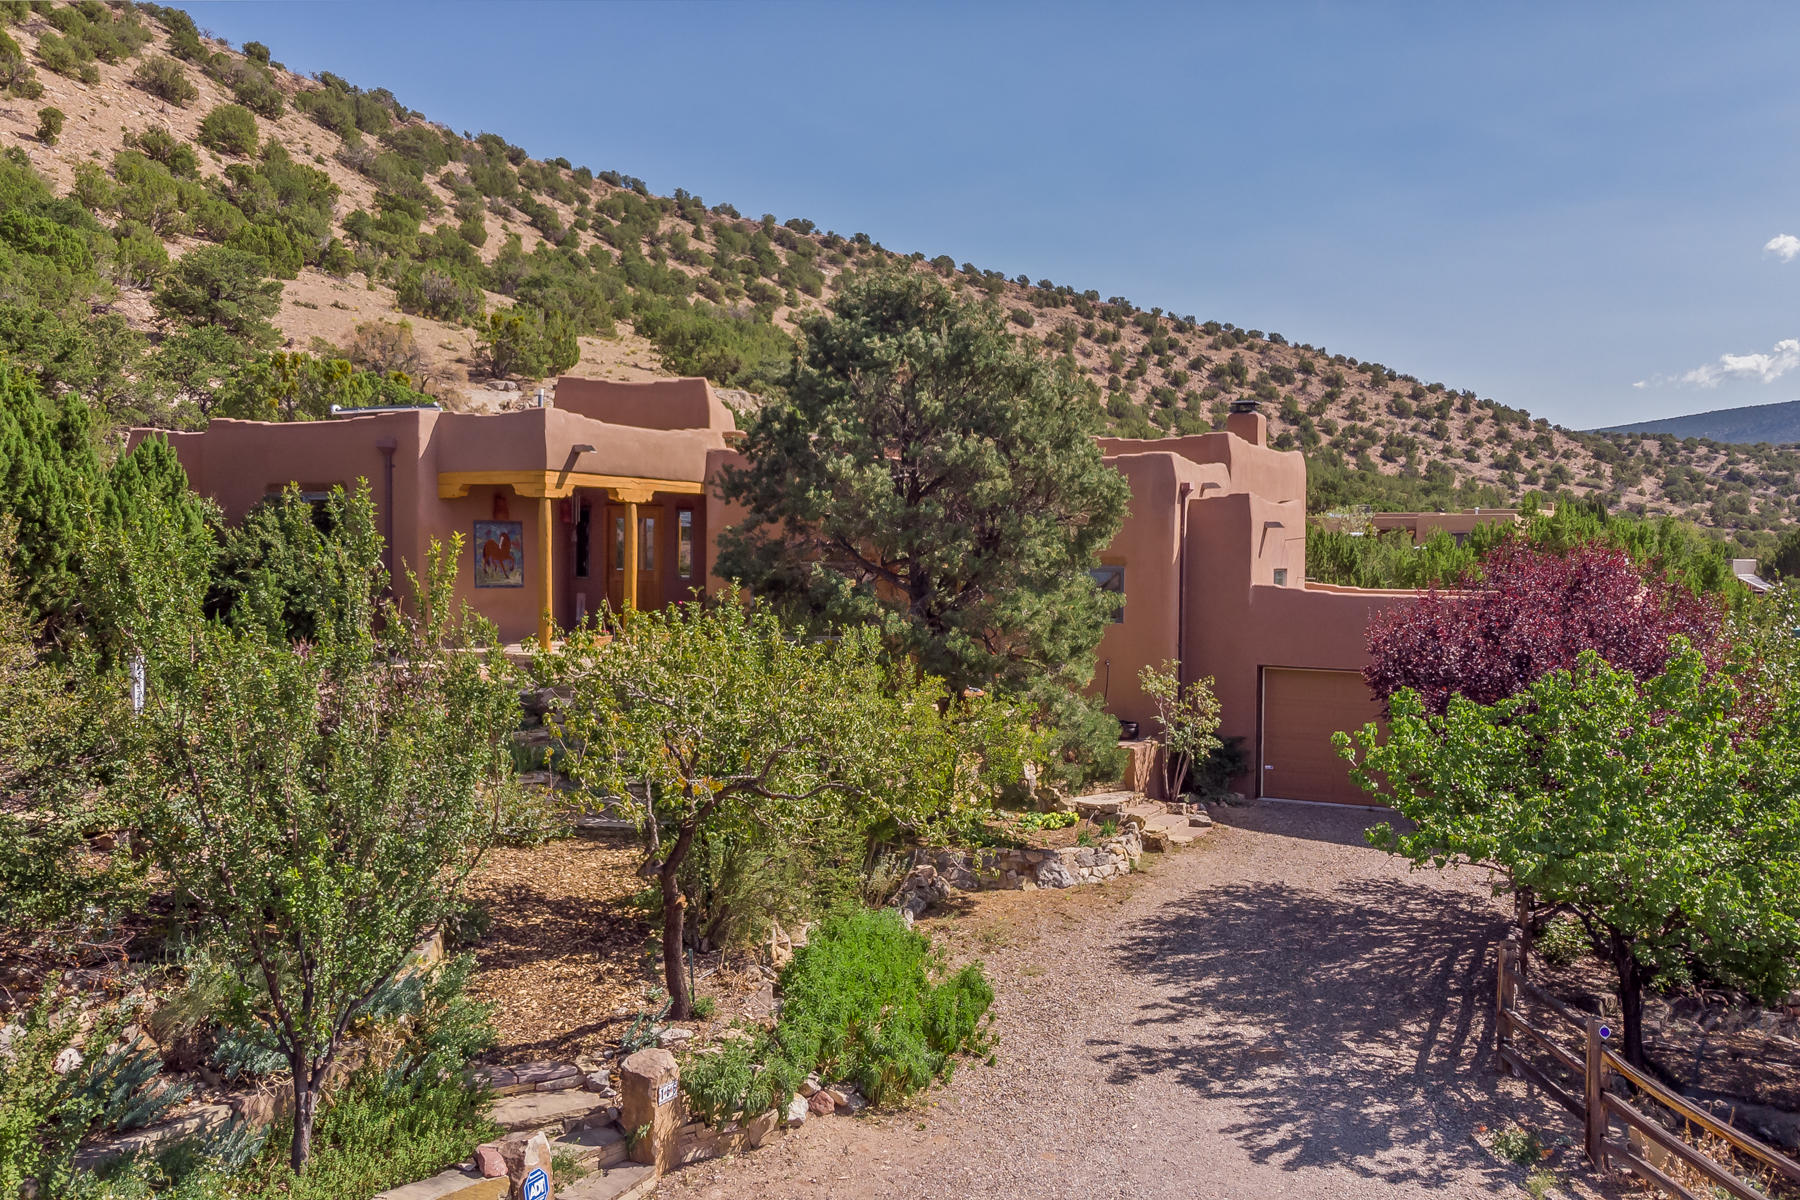 Enchanting Santa Fe style home nestled on 8.5 acres with adjacent 4.2 ac lot available to purchase.   Total SF includes: 2489sf MAIN w/4 bdrms,2full,1half bath, 2car gar; d 1458sf detached CASITA (2009)  w/kitchen, full bath, loft bedroom, LR, laundry/large STUDIO (approx. 650sf) w/half bath & storage. Custom designed and built as a peaceful oasis, surrounded by special spaces for quiet meditation and relaxation.Gardens, orchard, koi pond, trees,  native New Mexico wildflowers, amazing massive  rock walls and patios create n extensive retreat of your very own. Oversized wood windows bring beauty of the landscape & views to the rooms. The sky is amazing here, far from the city night glow the sky sparkles with a million galaxies. This property is on grid but generates is own electricity an